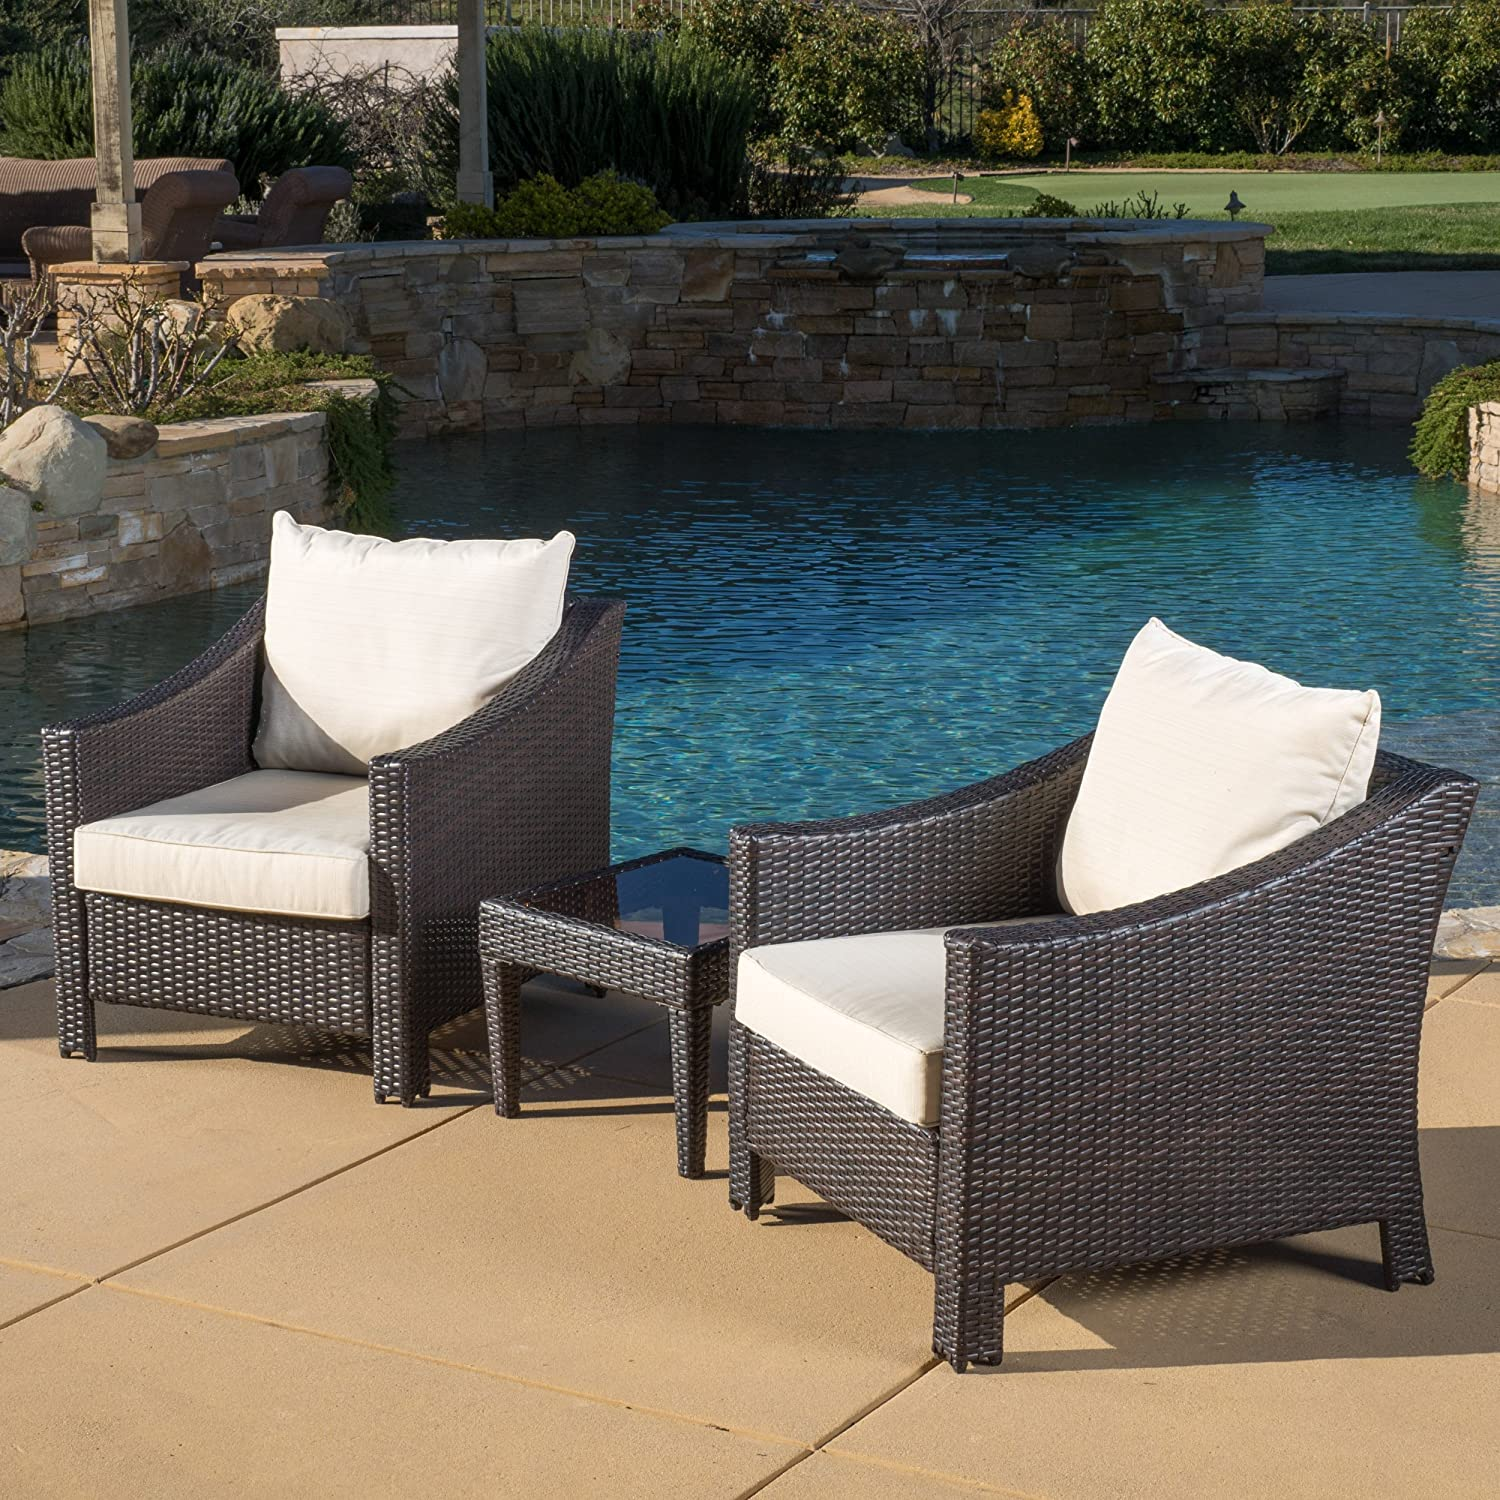 overstock buy how patio furniture howexgirlback lasts nice com to that ideas x outdoor